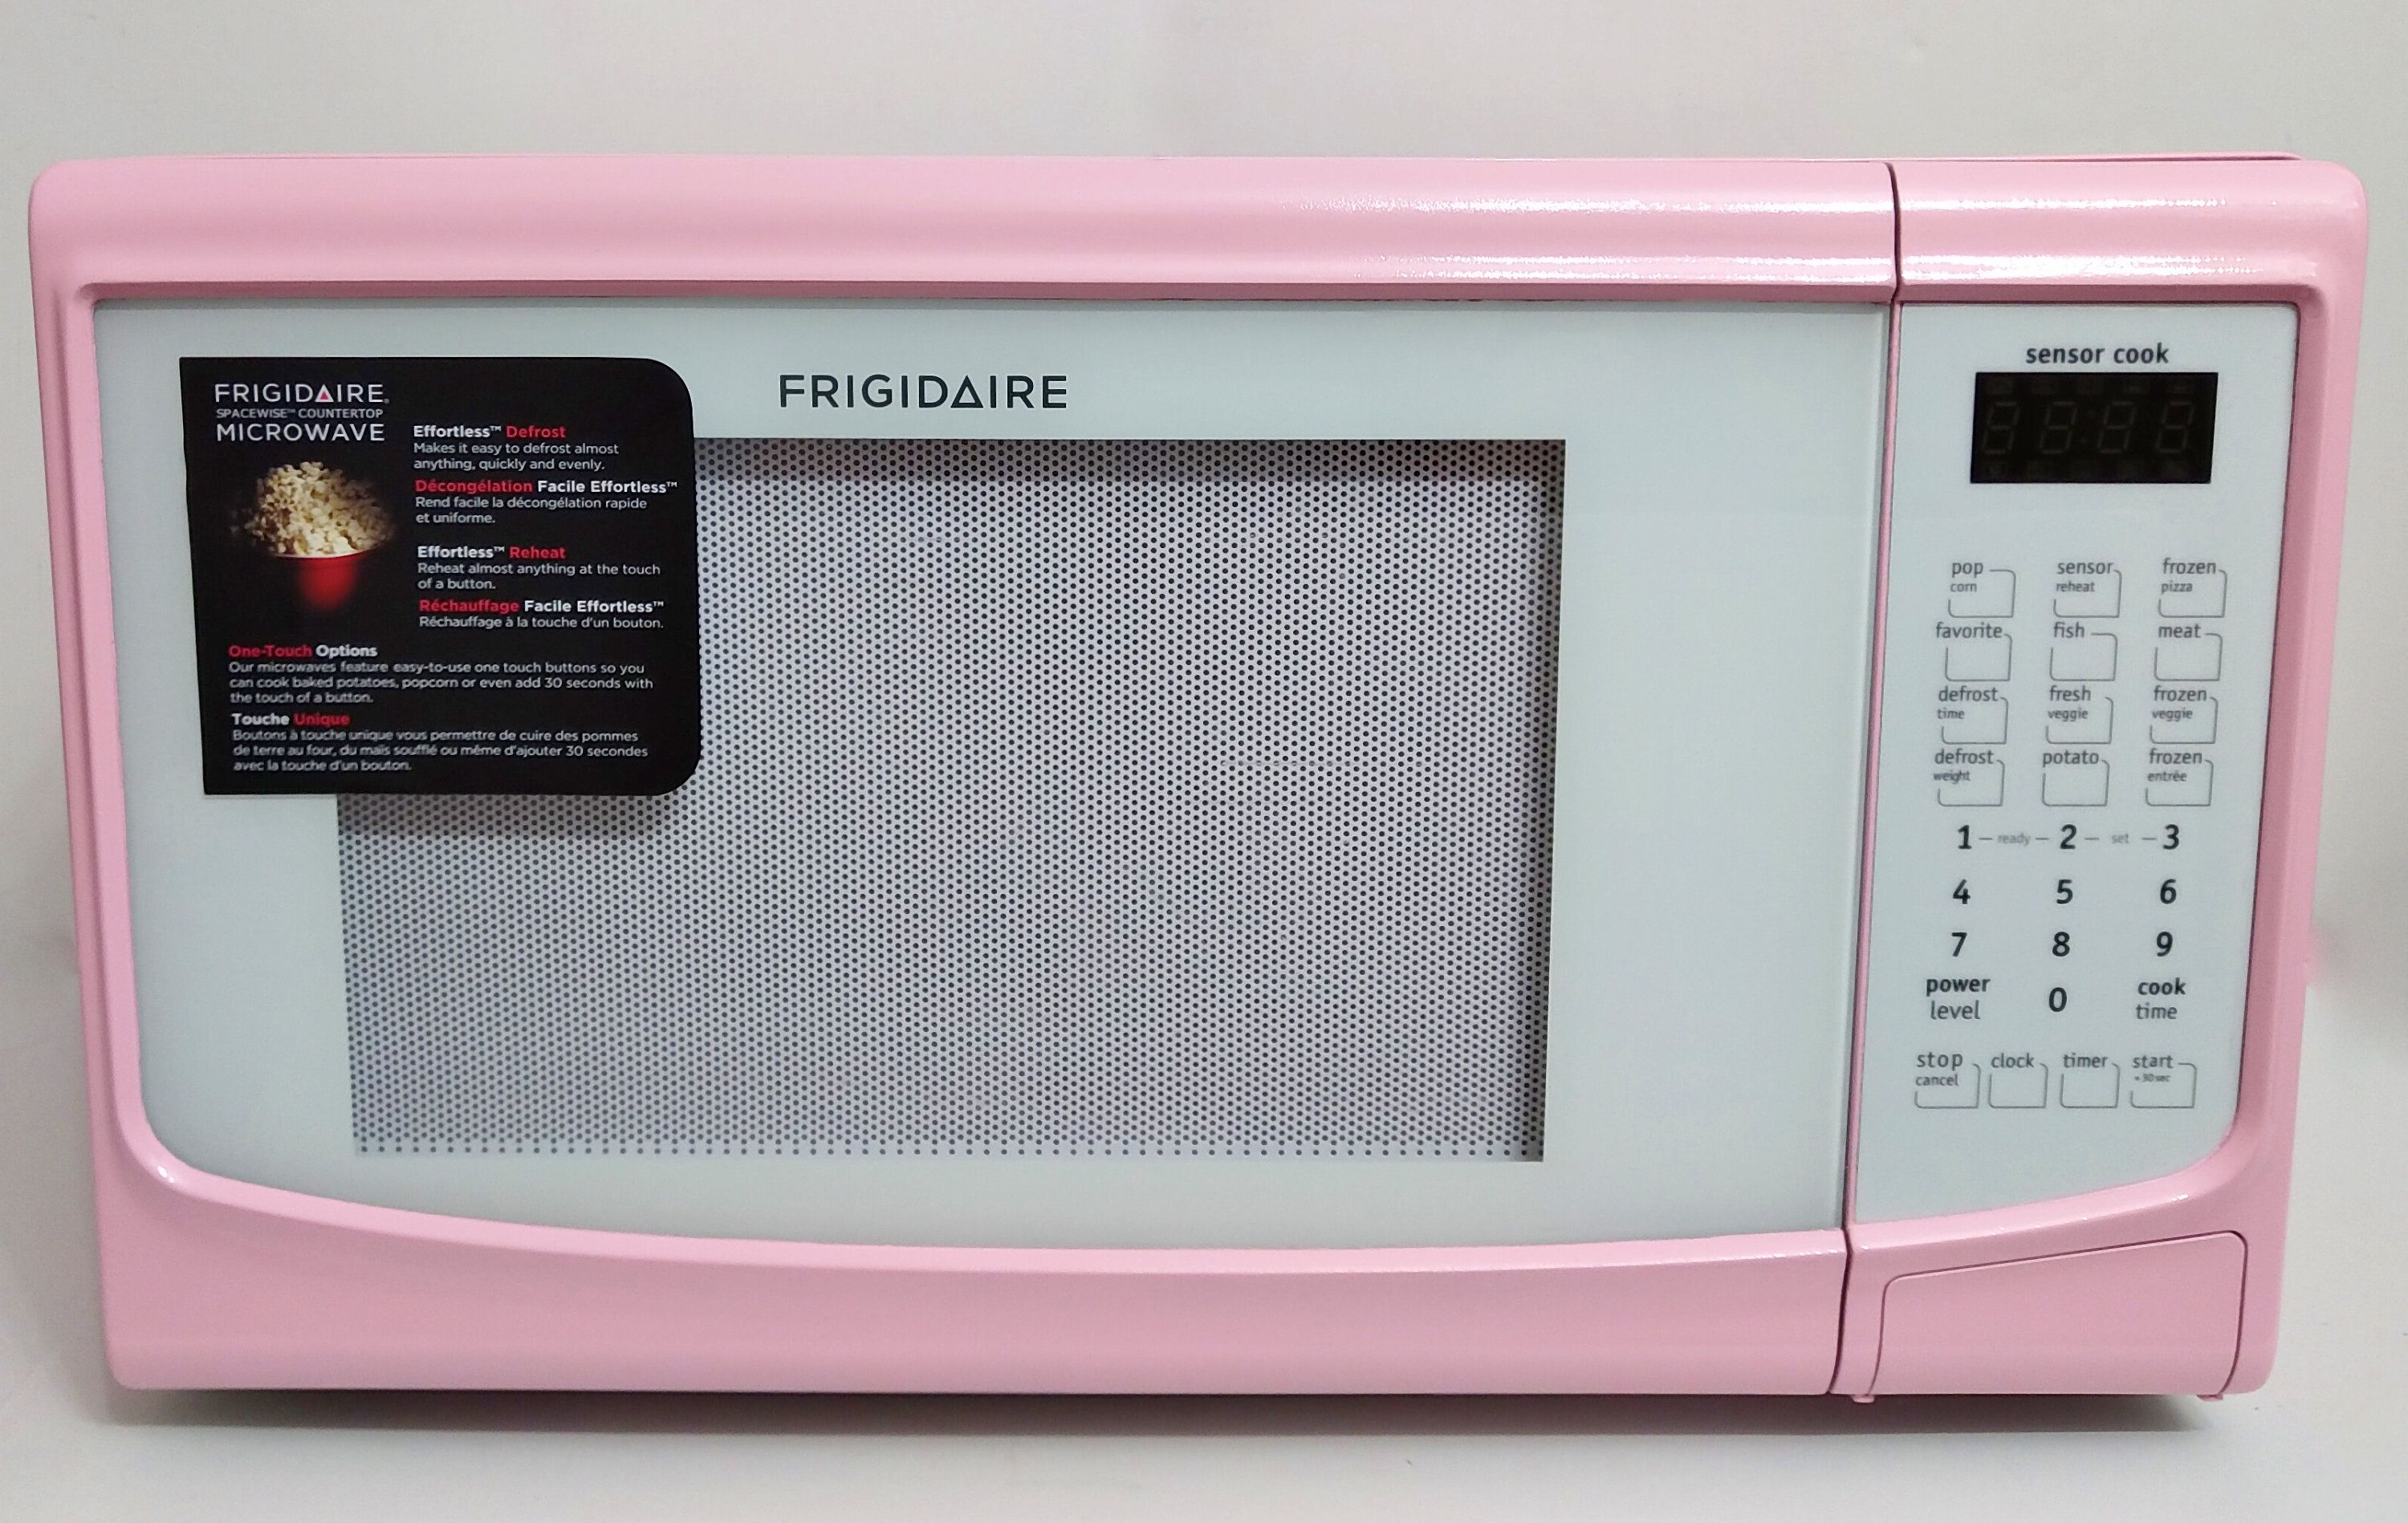 Pink Frigidaire Microwave Pink Microwave Oven 1100 Watts Pink Kitchen Appliances Last One Available Discon Pink Microwave Microwave Pink Kitchen Appliances